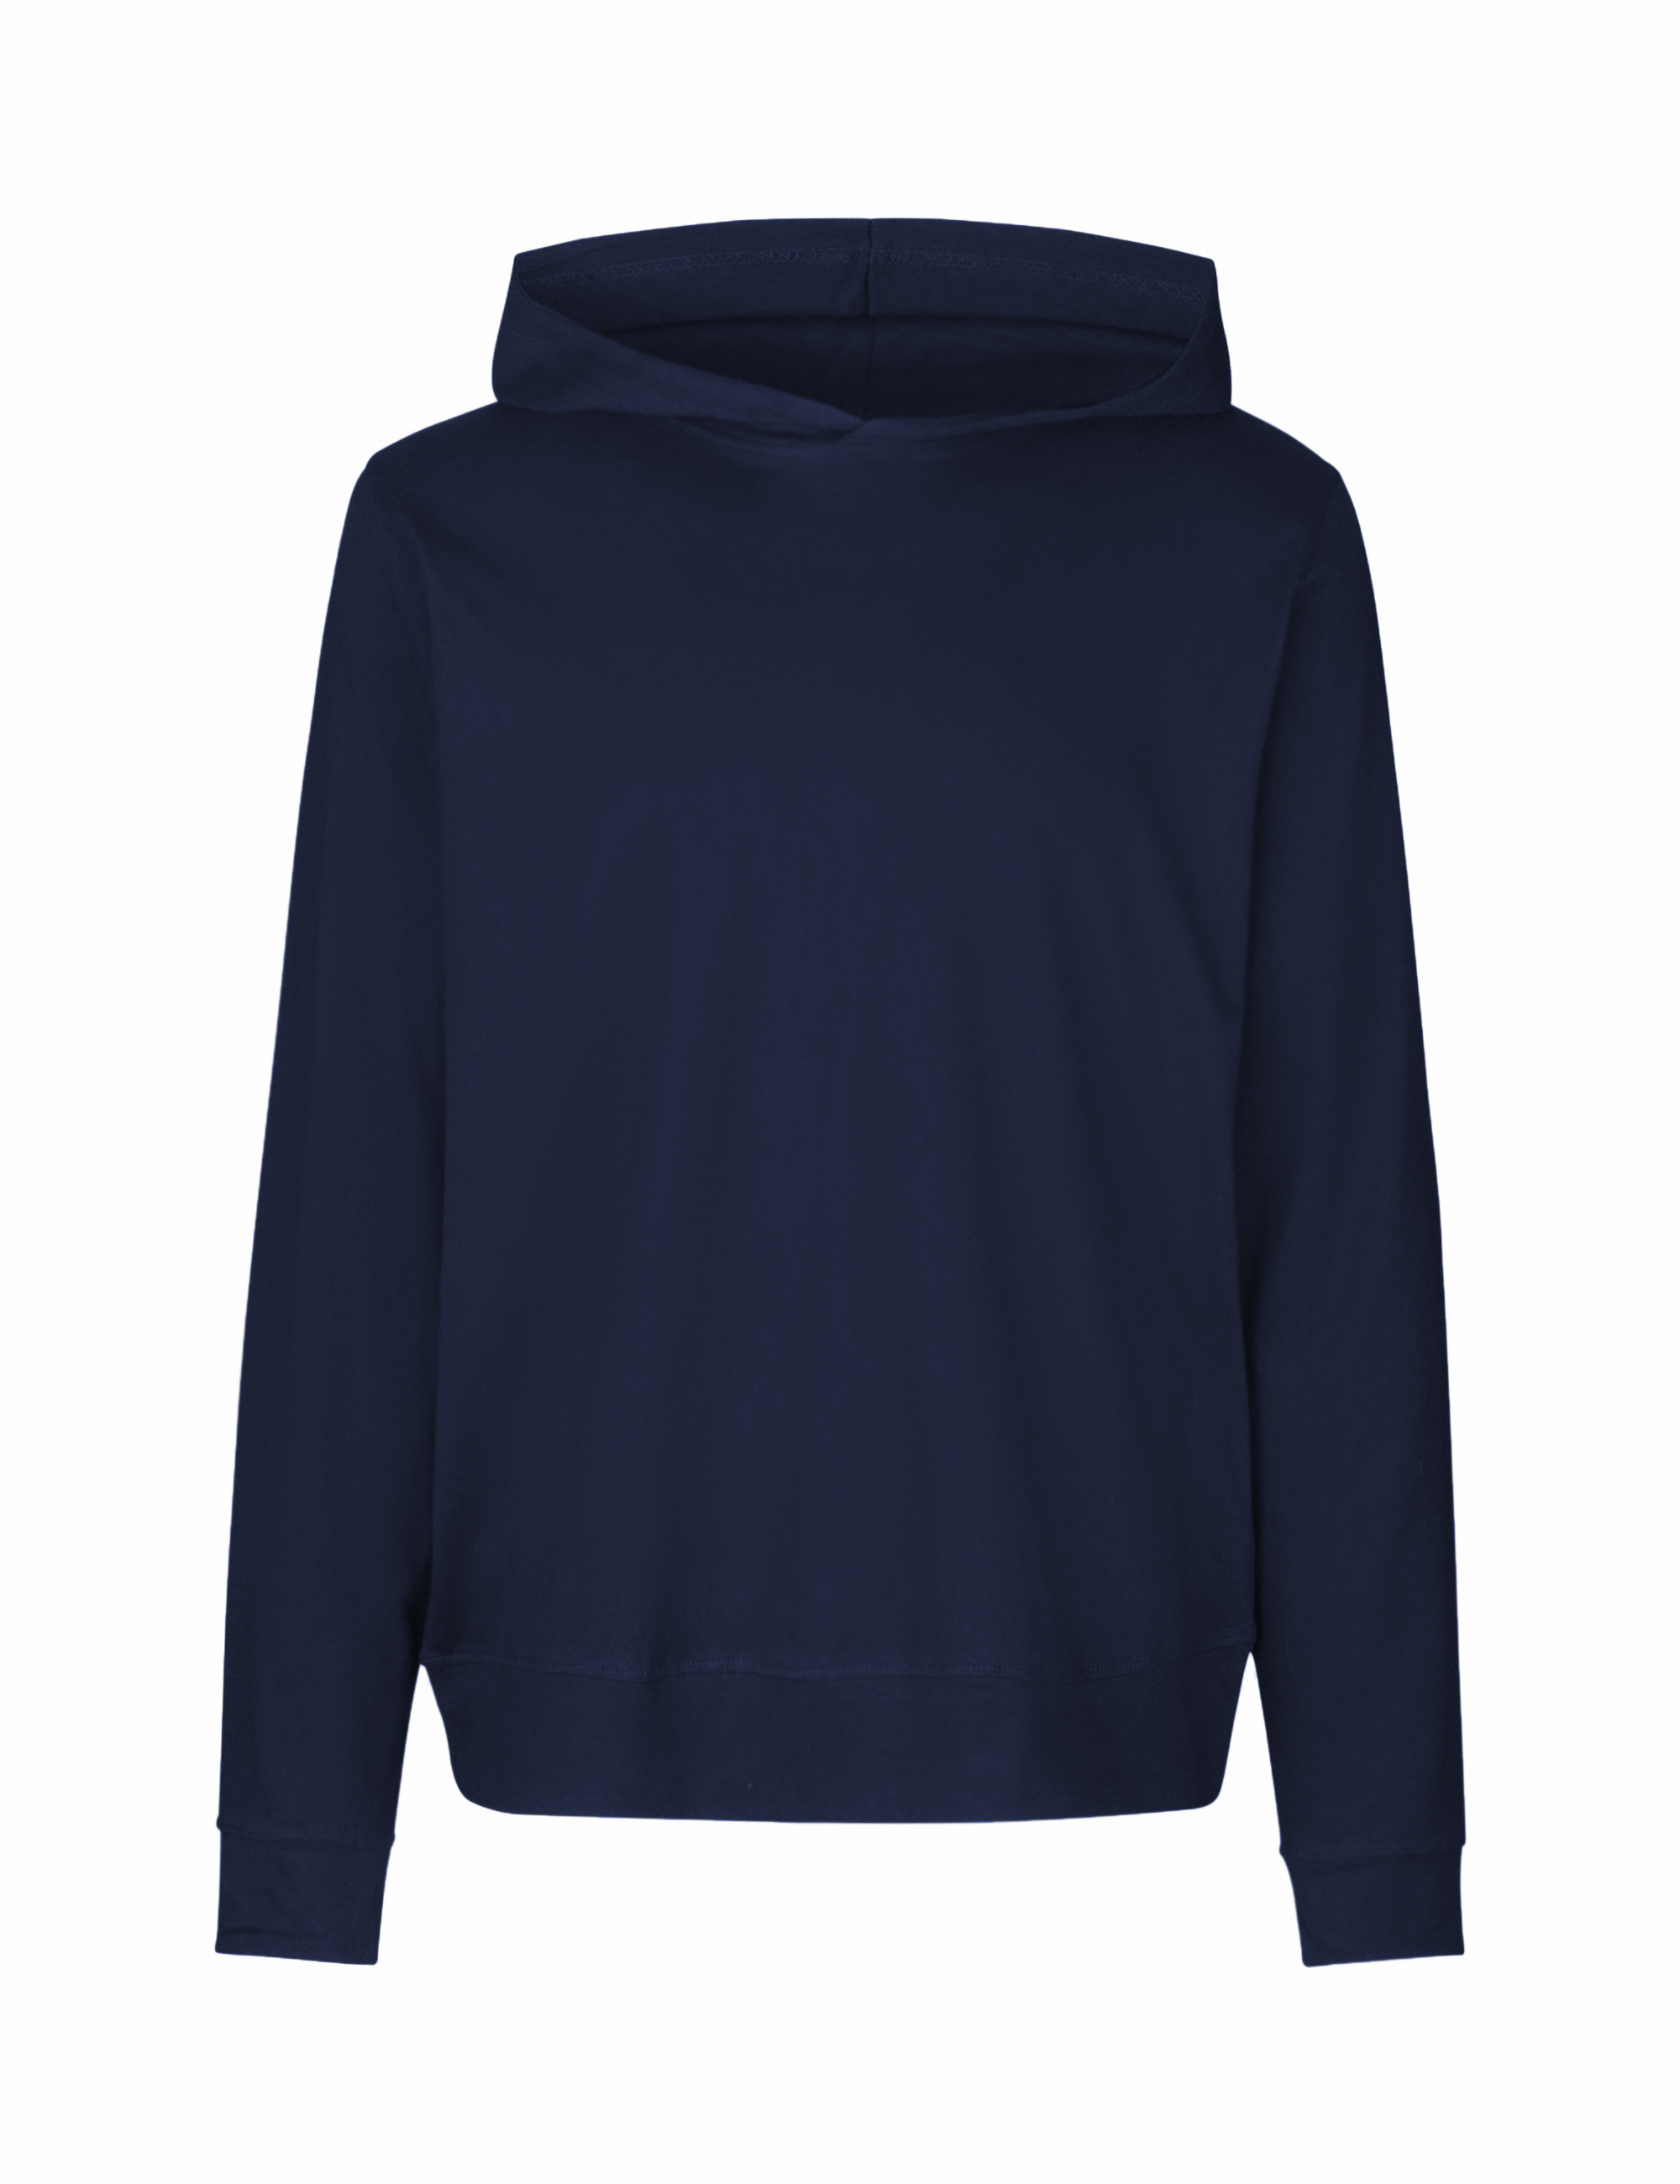 O62101 Unisex Jersey Hoodie i Navy